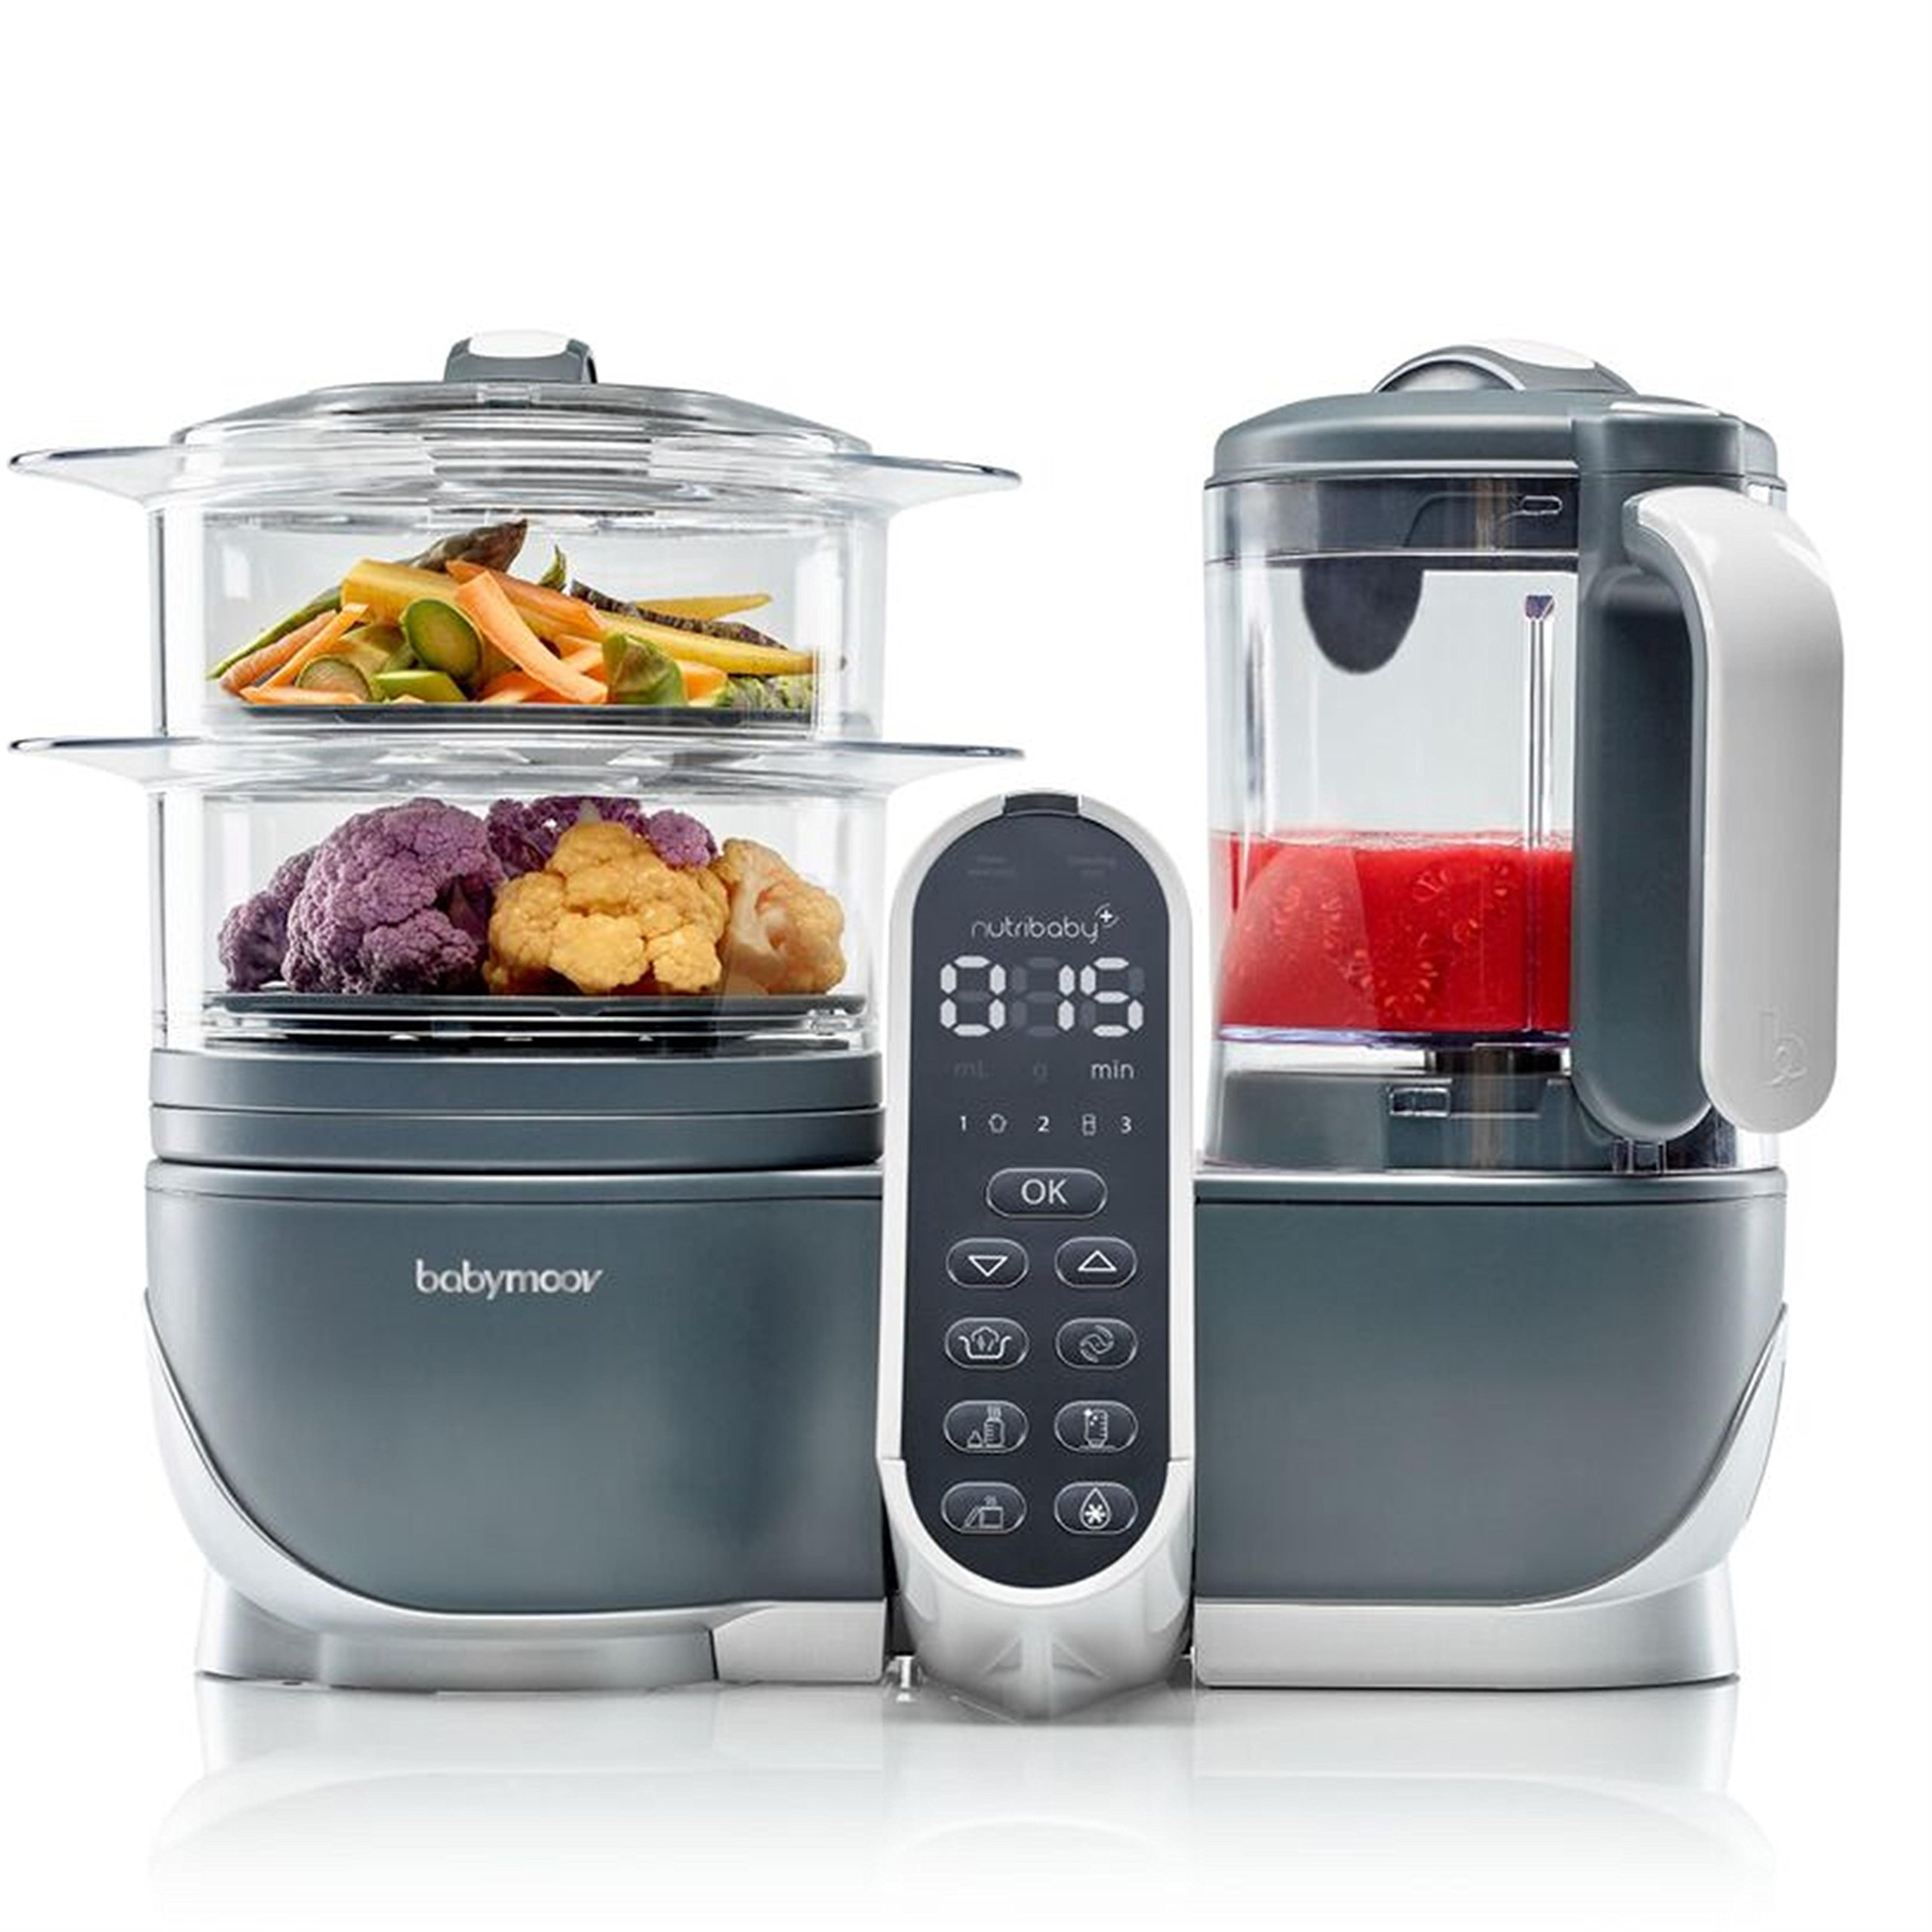 Duo Meal Station Food Maker | 5 in 1 Food Processor with Steam Cooker, Multi-Speed Blender, Baby Purees, Warmer, Defroster, Sterilizer (2019 NEW VERSION) by Babymoov (Image #1)